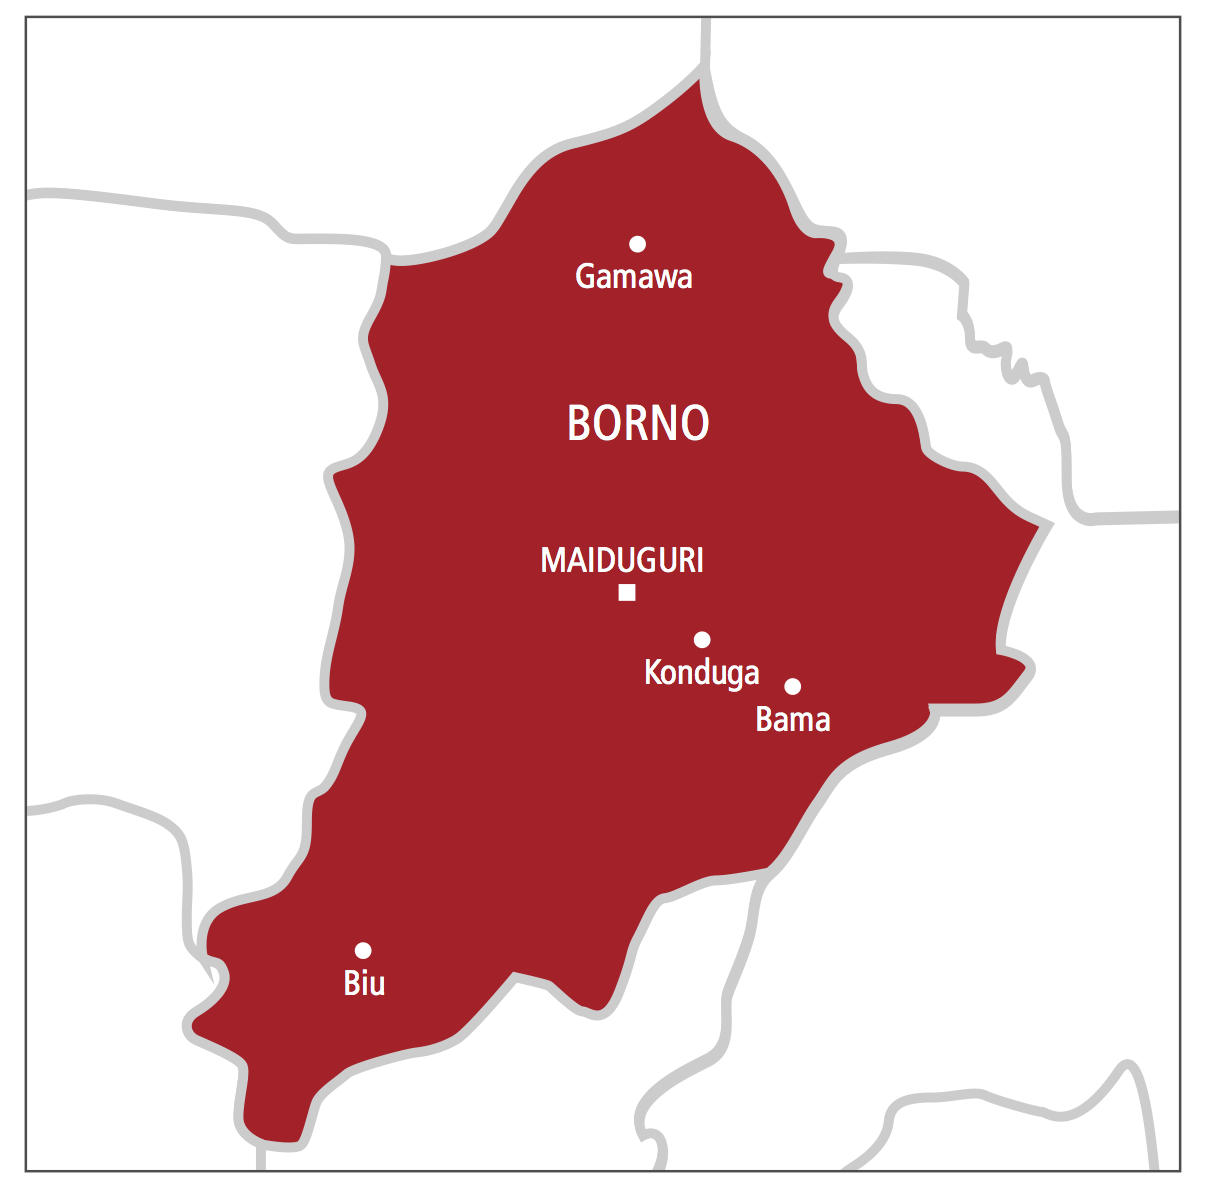 Army Kills 9 Boko Haram Insurgents In Borno As State Relaxes COVID-19 Lockdown